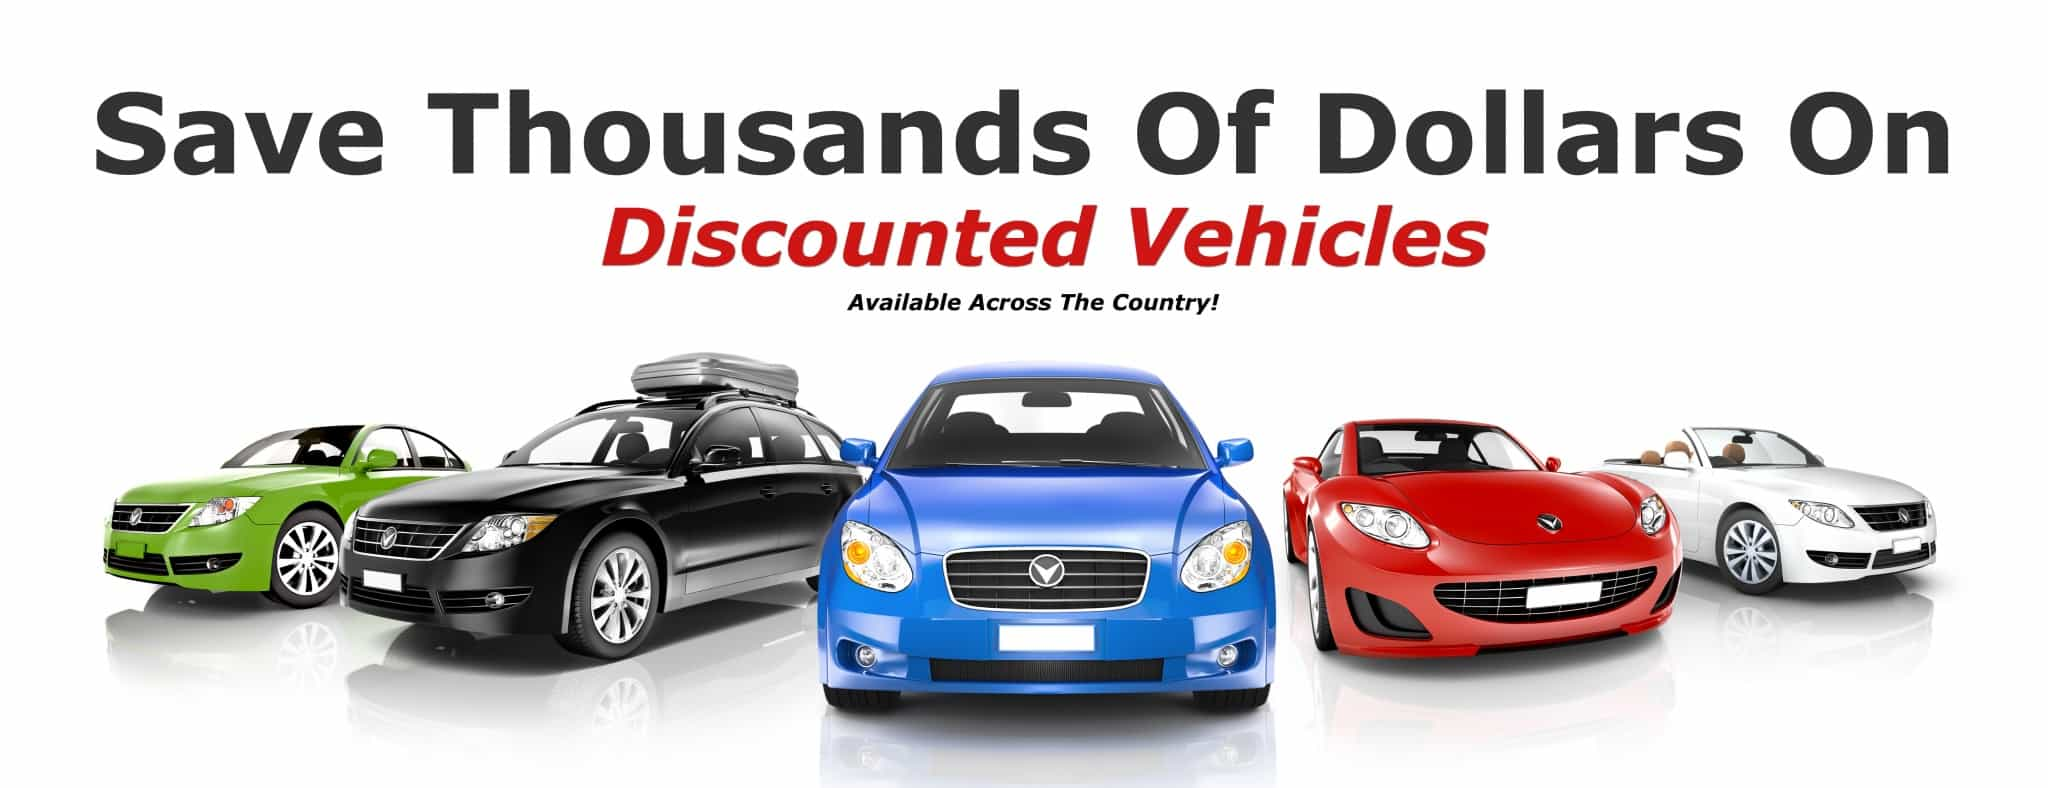 Discounted and Damaged Recreation Vehicles & Campers